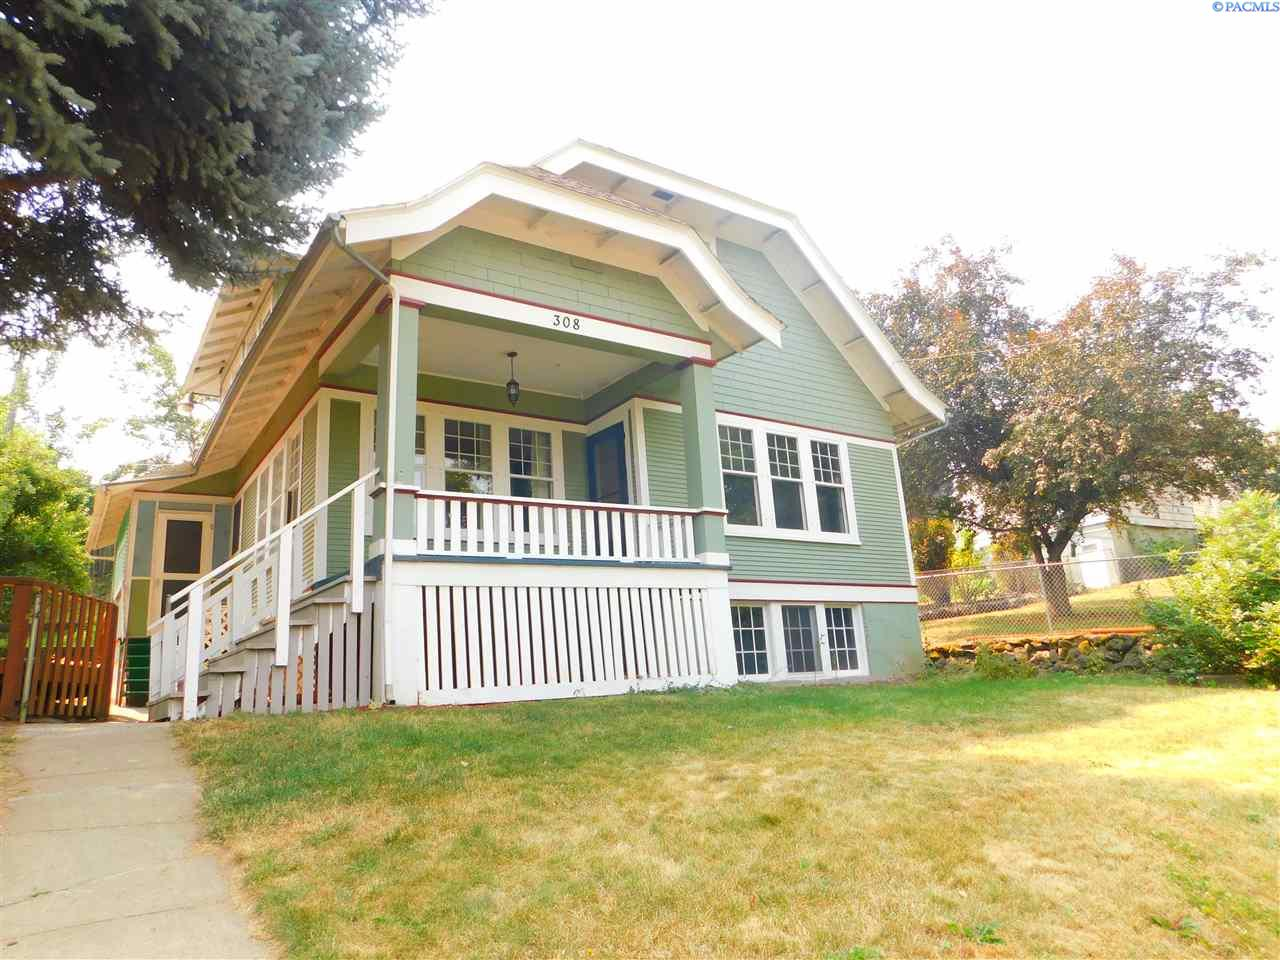 Single Family Home for Sale at 308 E James St 308 E James St Colfax, Washington 99111 United States